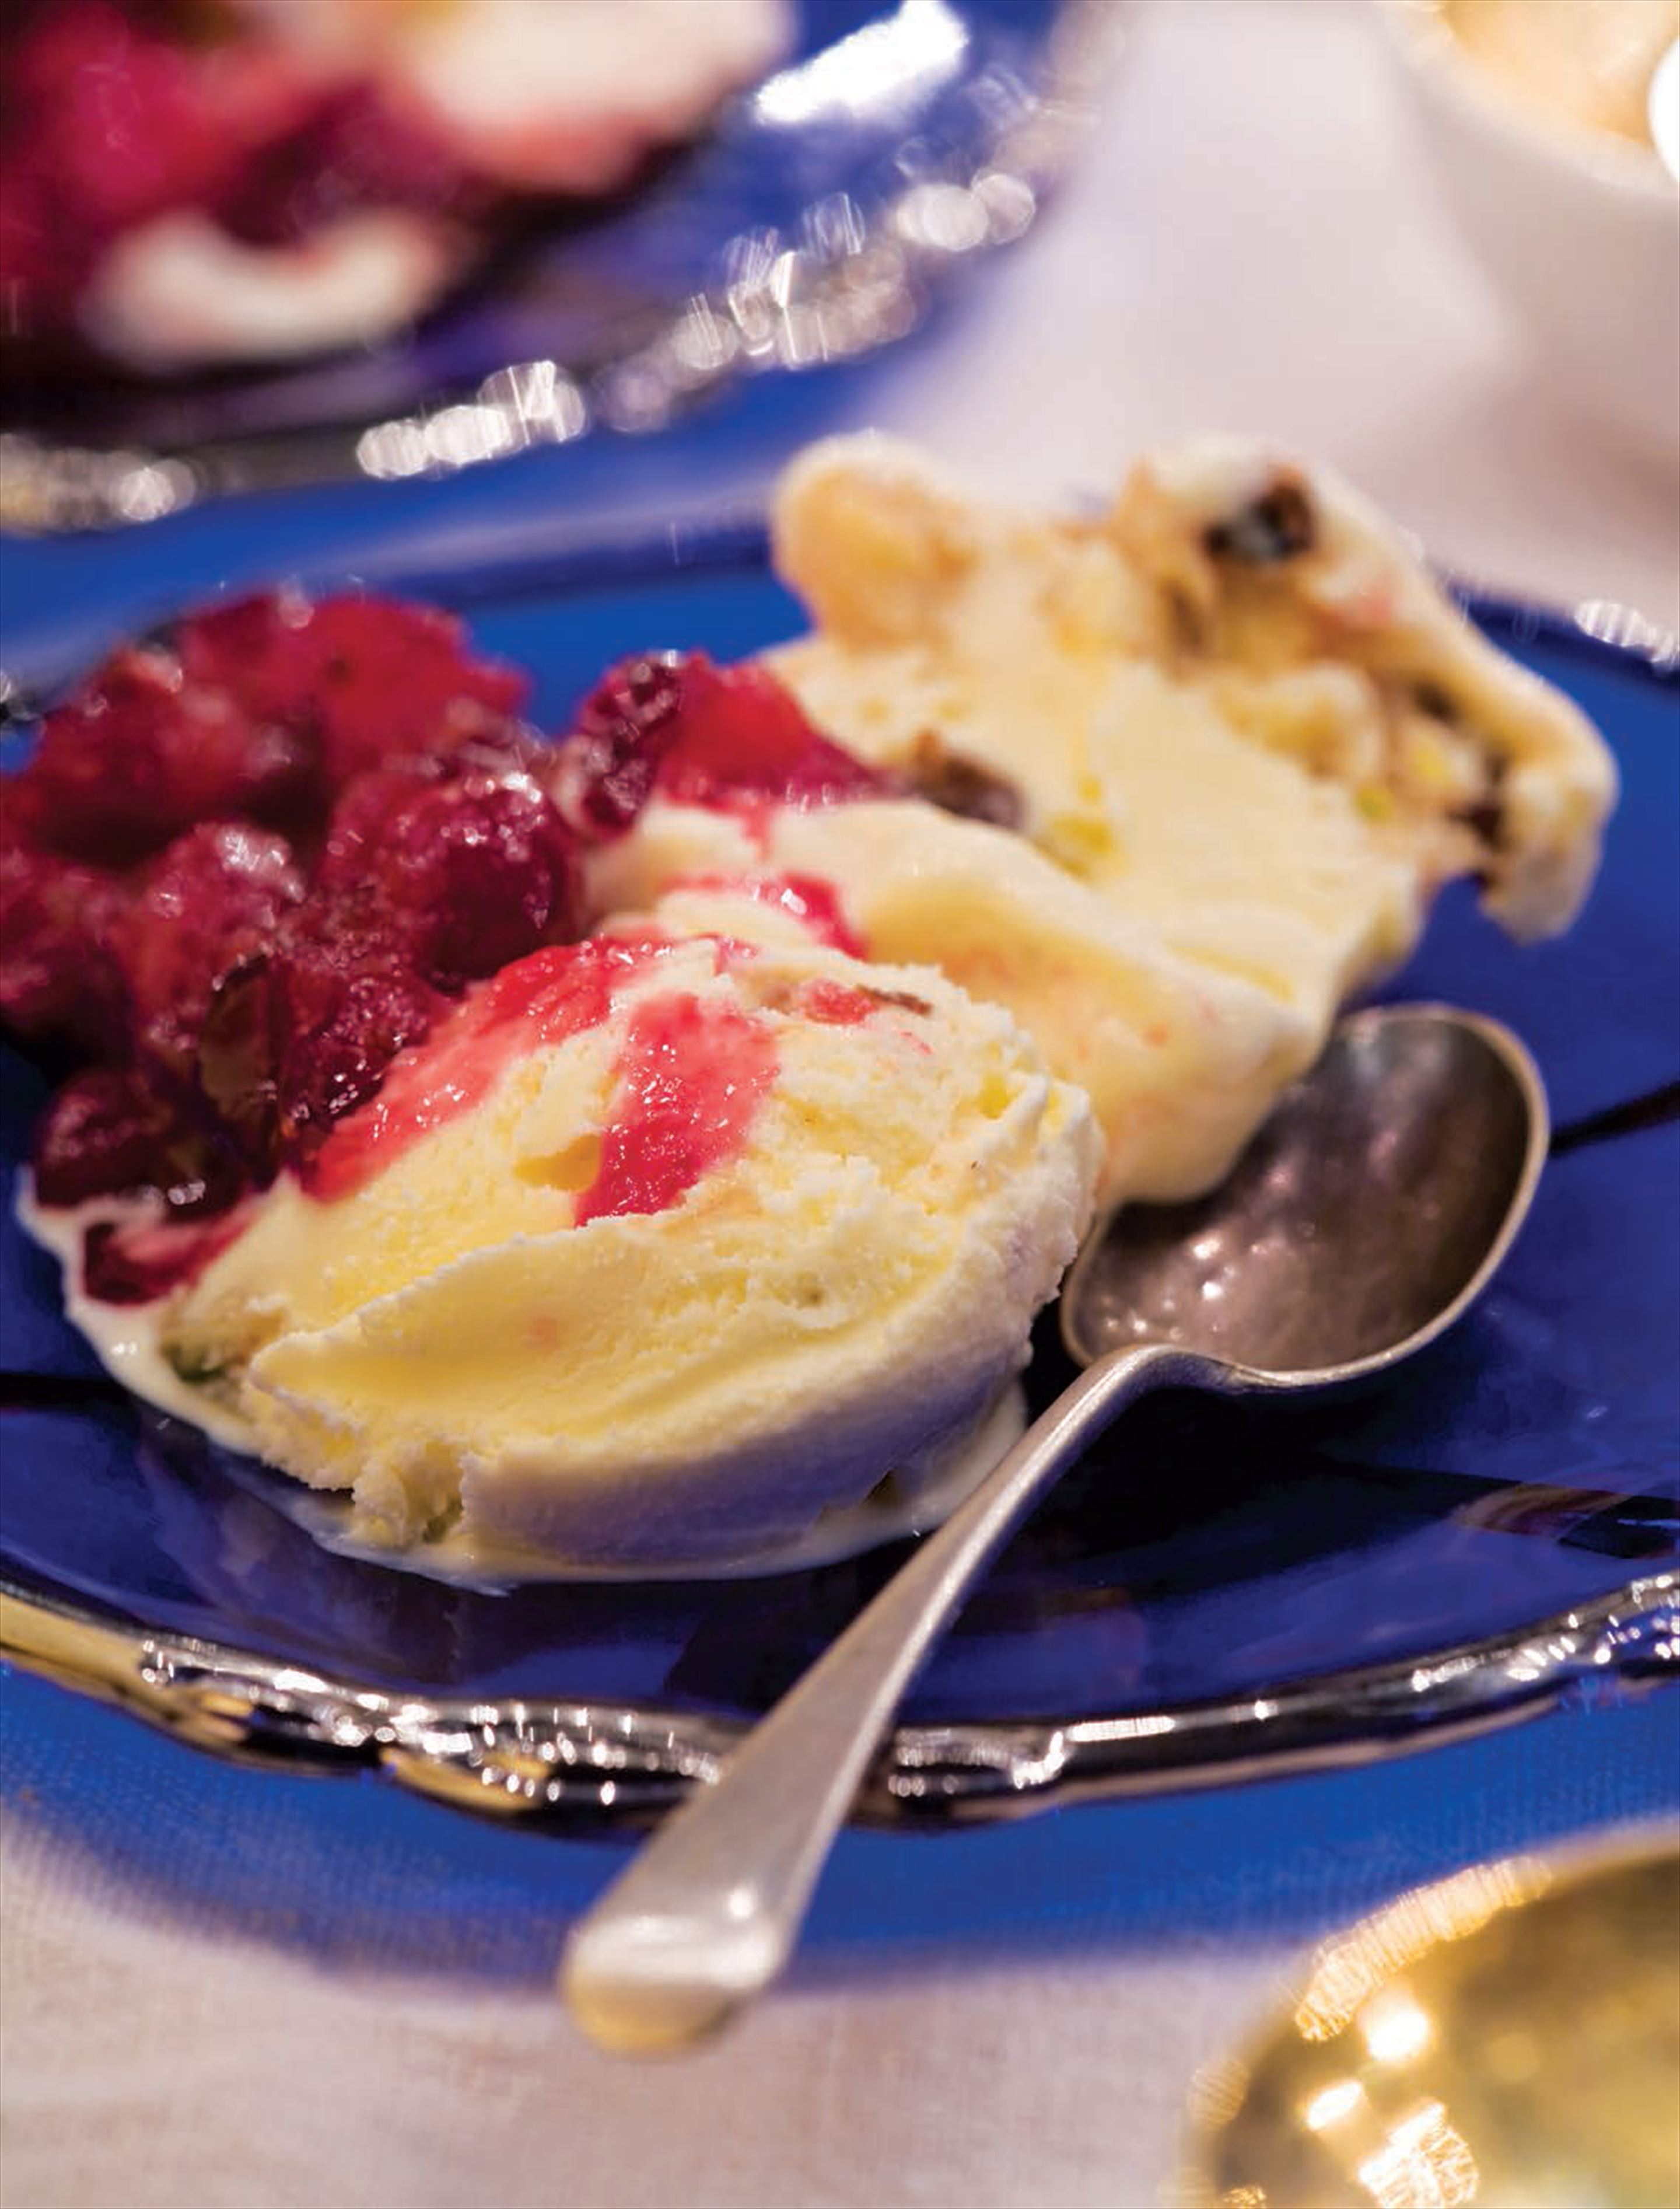 Florentine ice cream with cranberry sauce